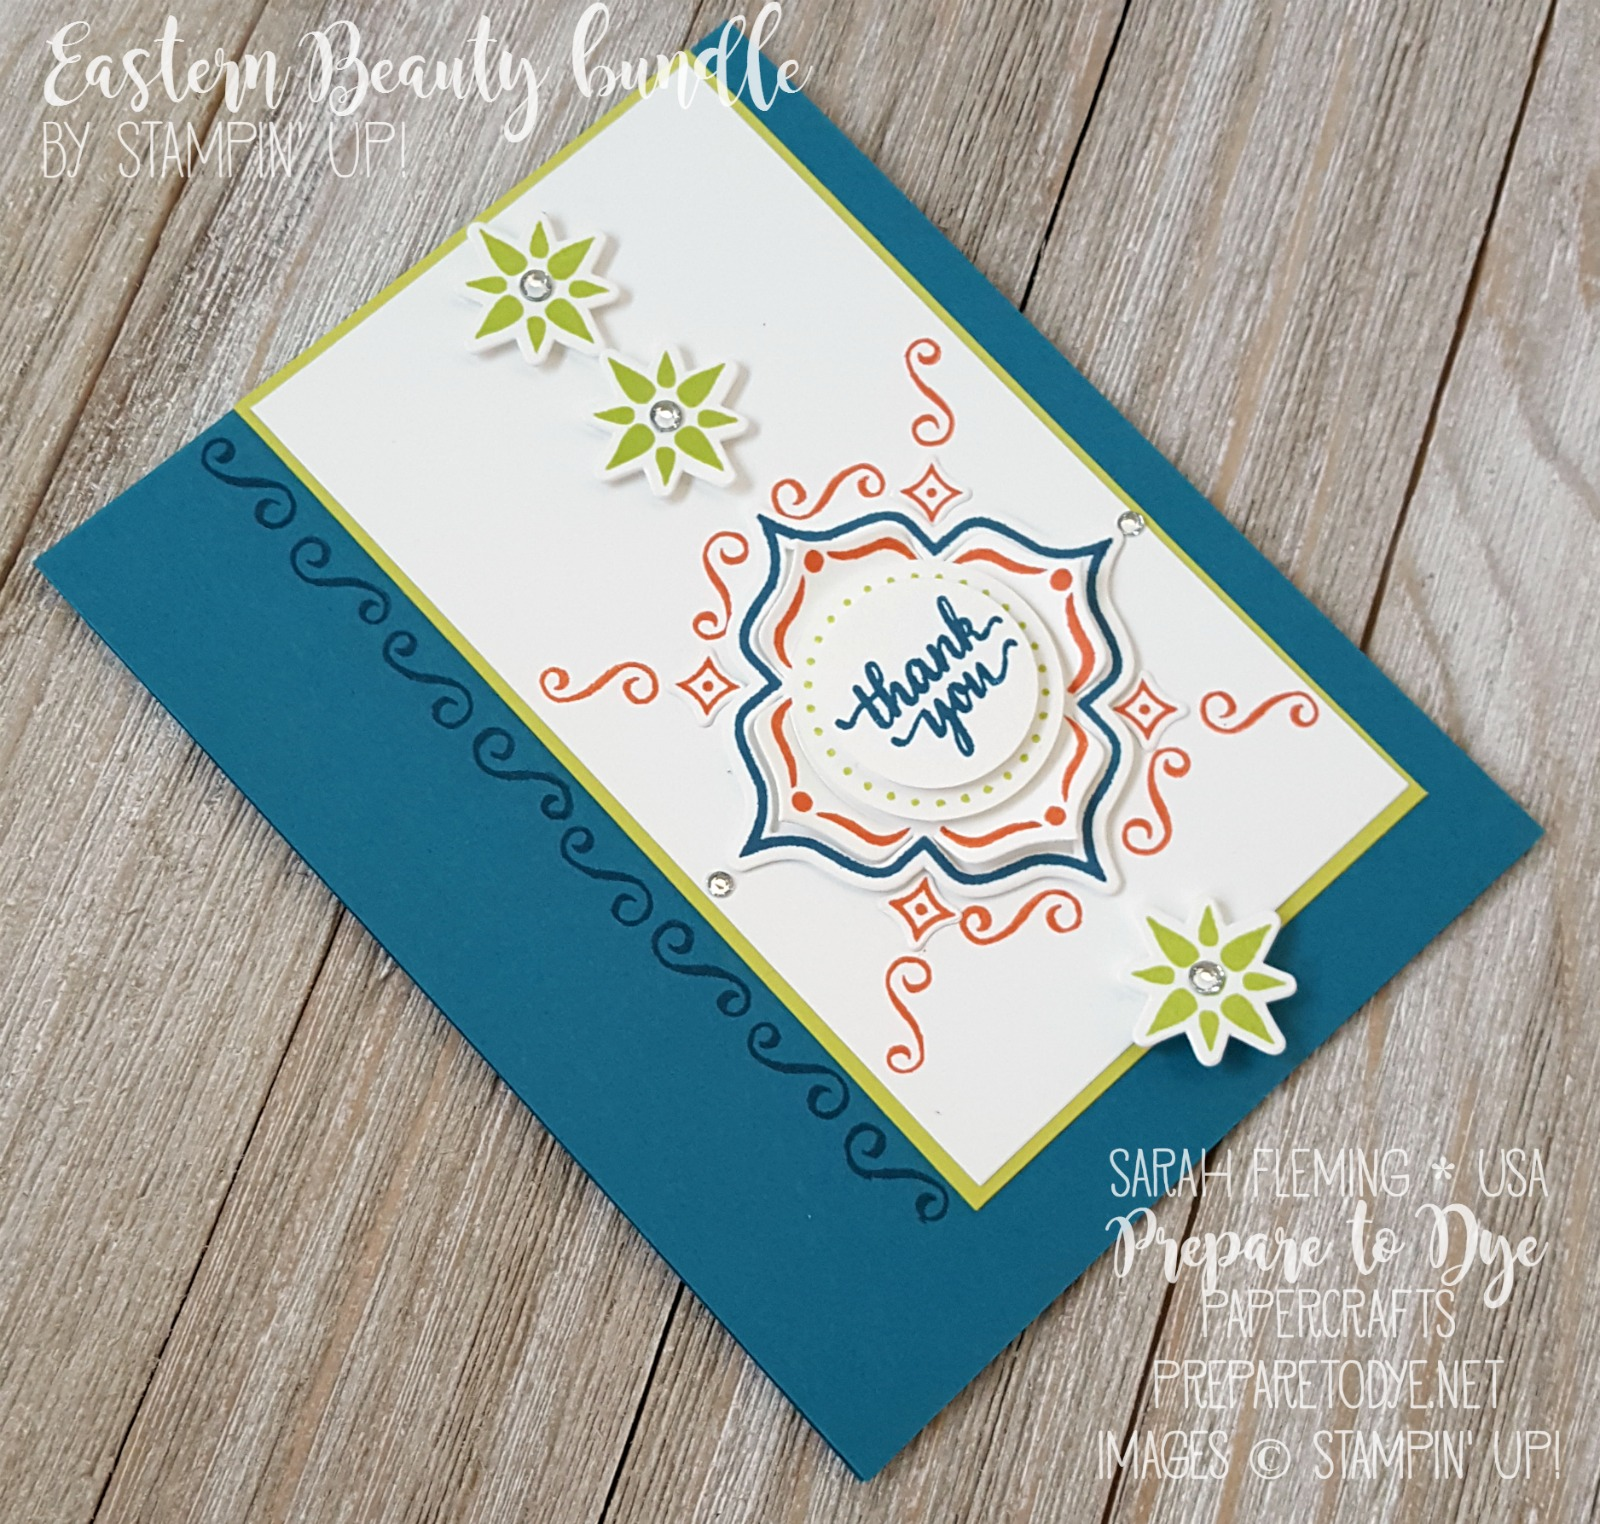 Stampin' Up! Eastern Beauty bundle handmade masculine card for Kylie's International Blog Highlight - stepped up - Sarah Fleming - Prepare to Dye Papercrafts